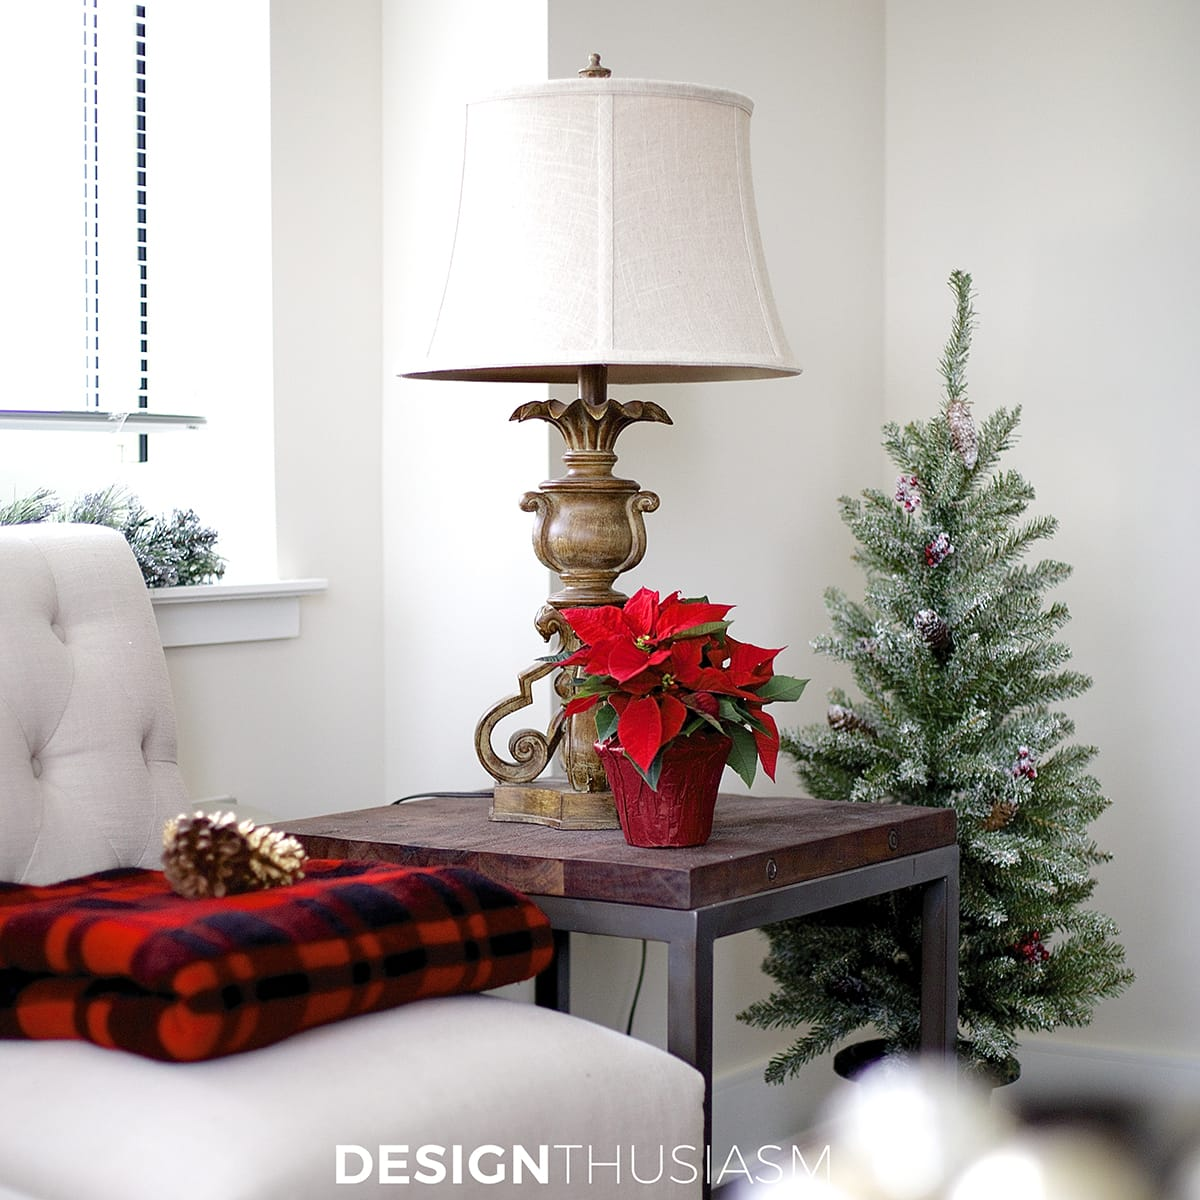 Holiday Decorating Ideas For Small Spaces Part - 27: Holiday Decorating Ideas For A Small Apartment | Designthusiasm.com